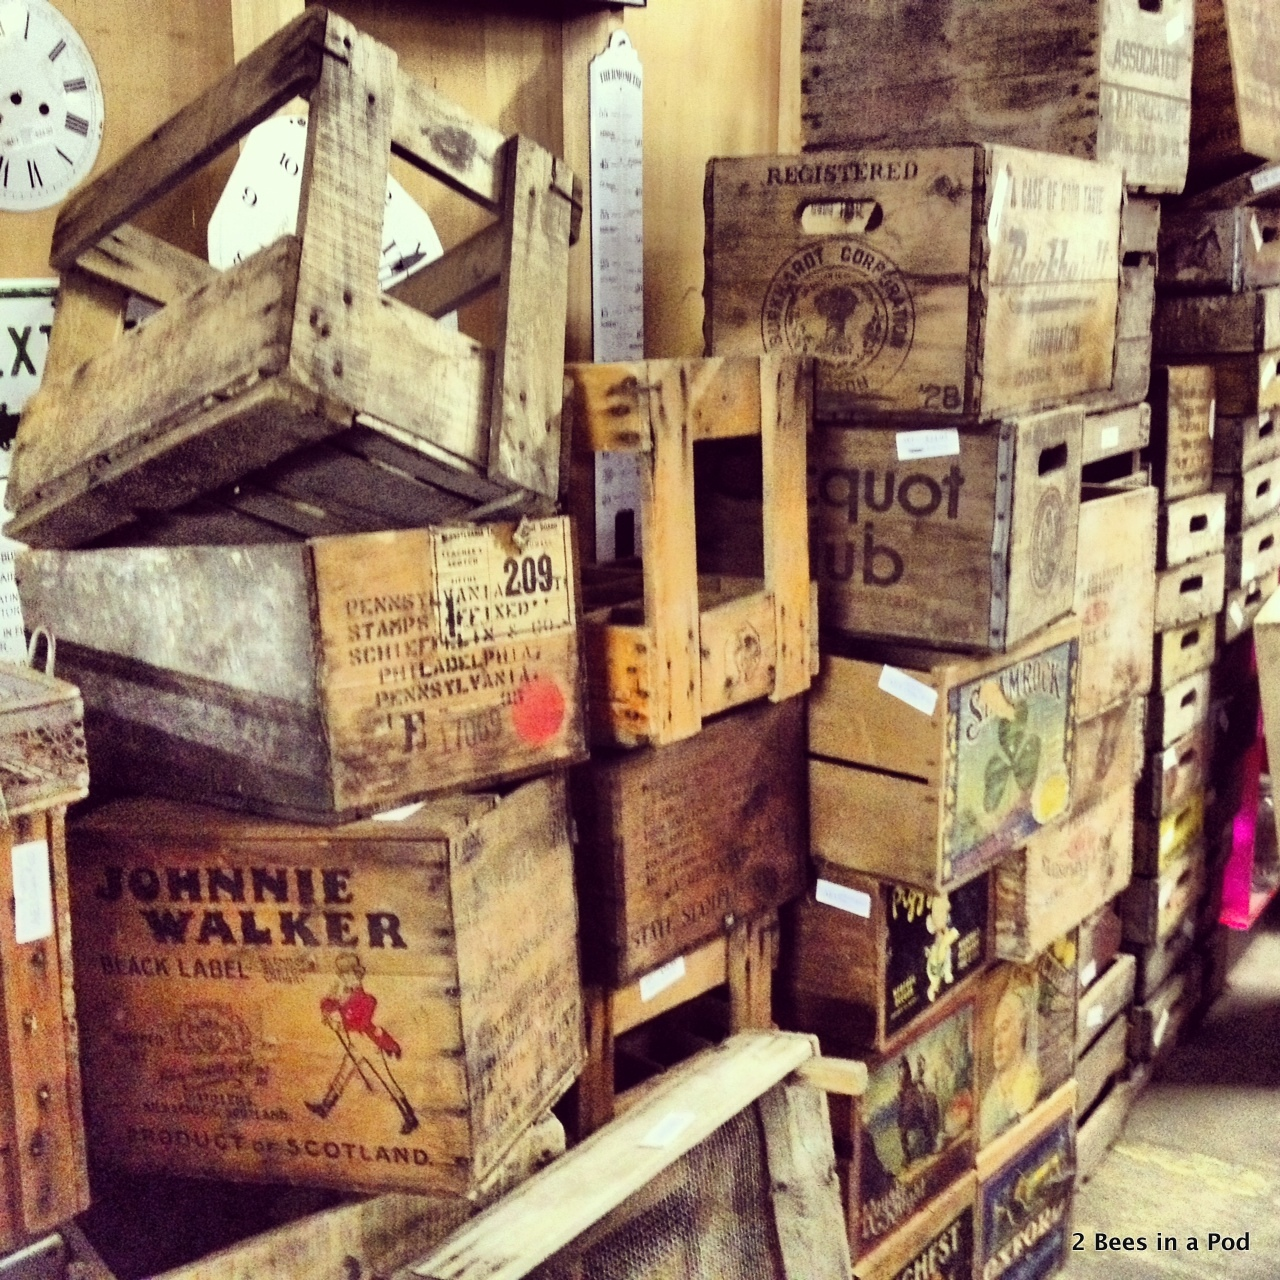 Love all these crates at Tobacco Barn Antiques in Asheville...especially the Johnnie Walker box.